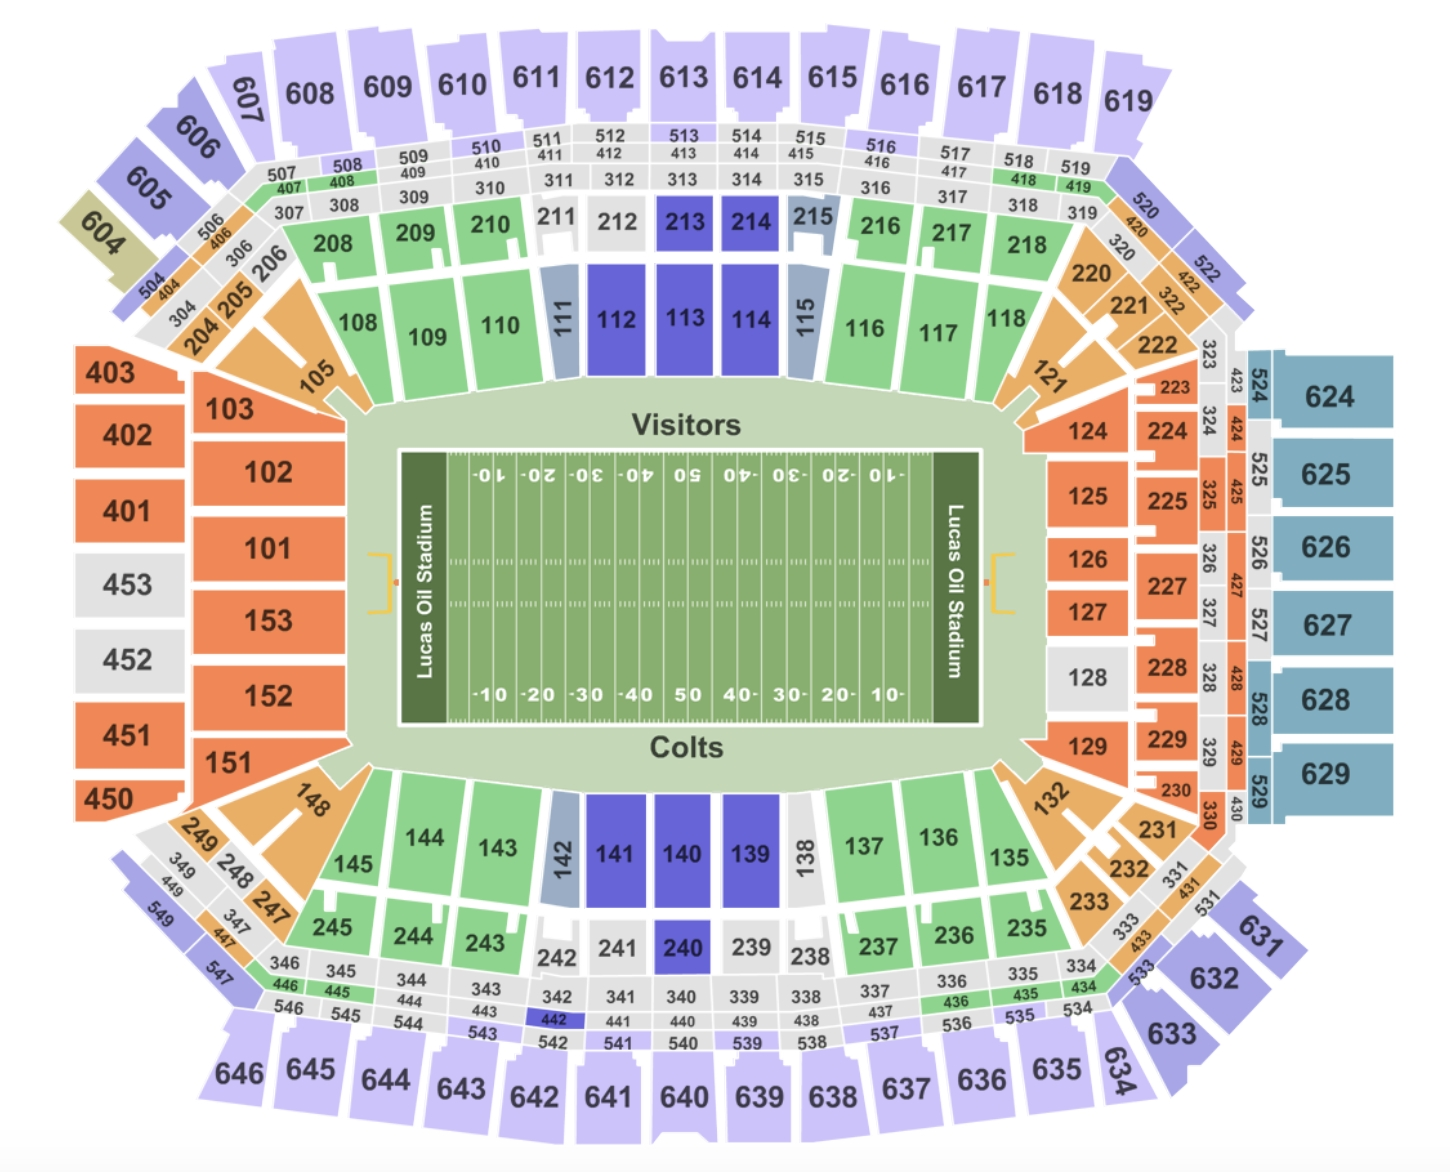 Lucas Oil Stadium Seating Chart + Section, Row And Seat intended for Super Bowl Seating Chart Seat Numbers